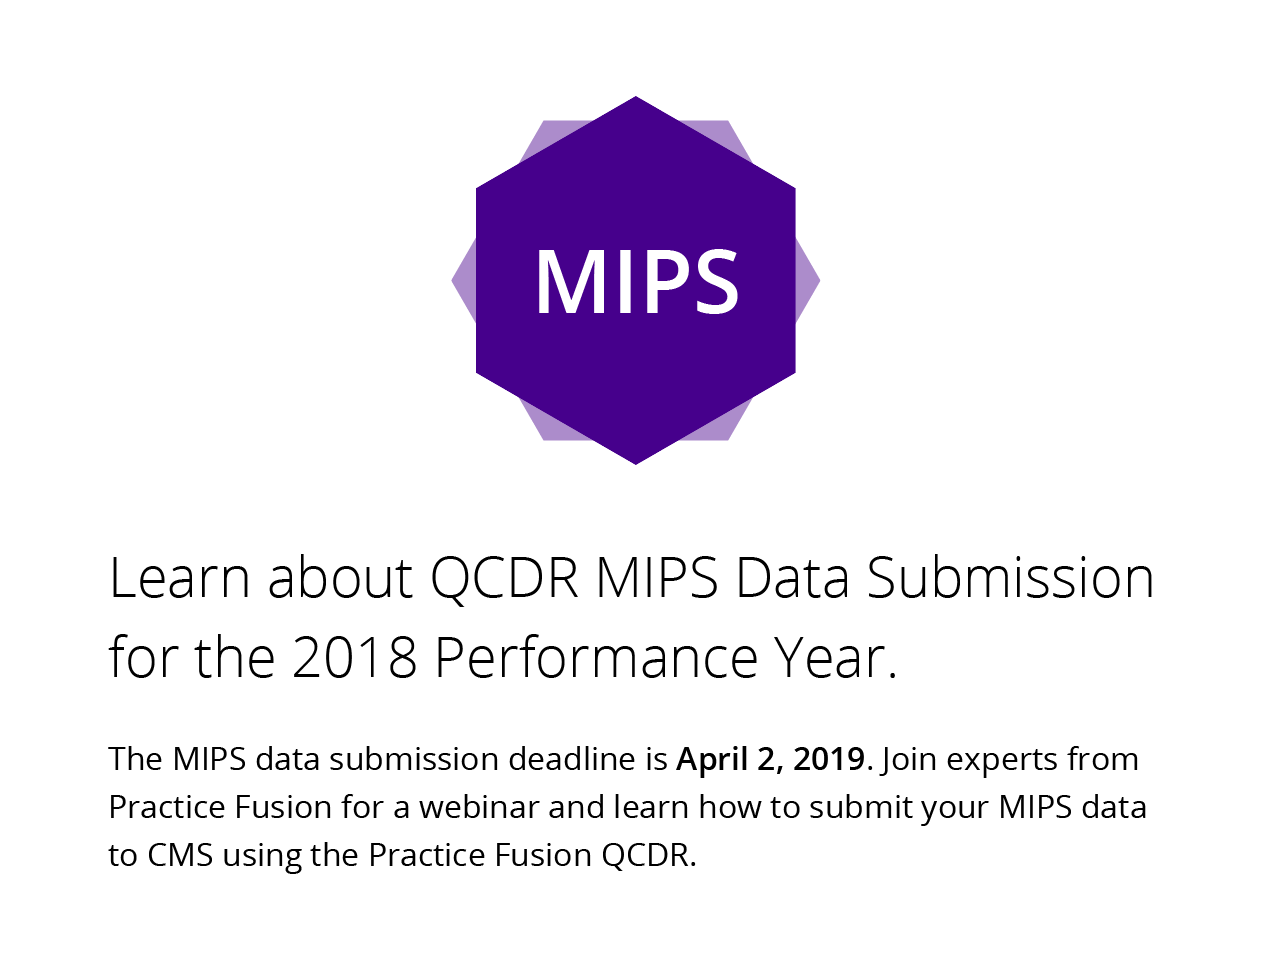 The MIPS data submission deadline is April 2, 2019. Join experts from Practice Fusion for a webinar and learn how to submit your MIPS data to CMS using the Practice Fusion QCDR.